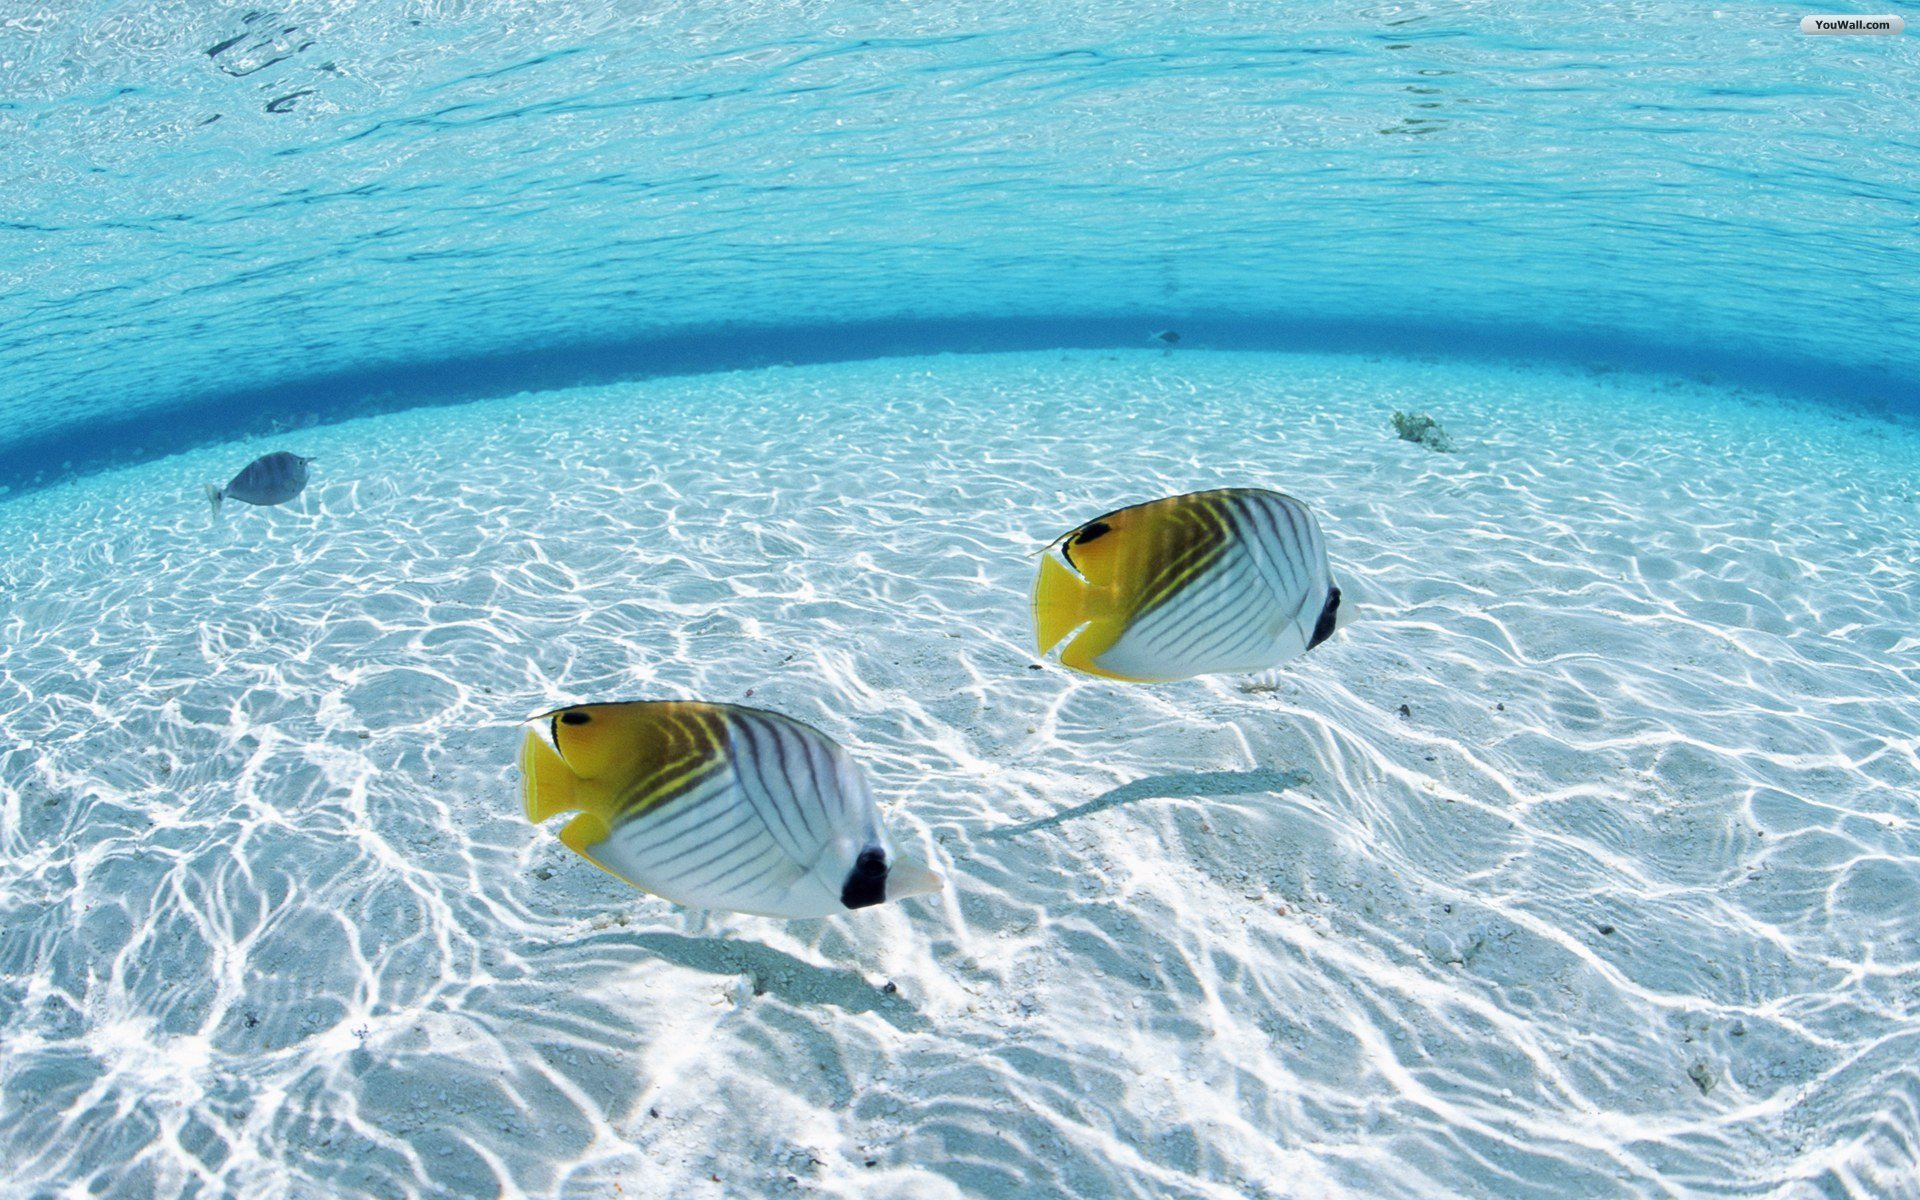 fish in water wallpaper wallpapersafari ForWallpaper Fish In Water